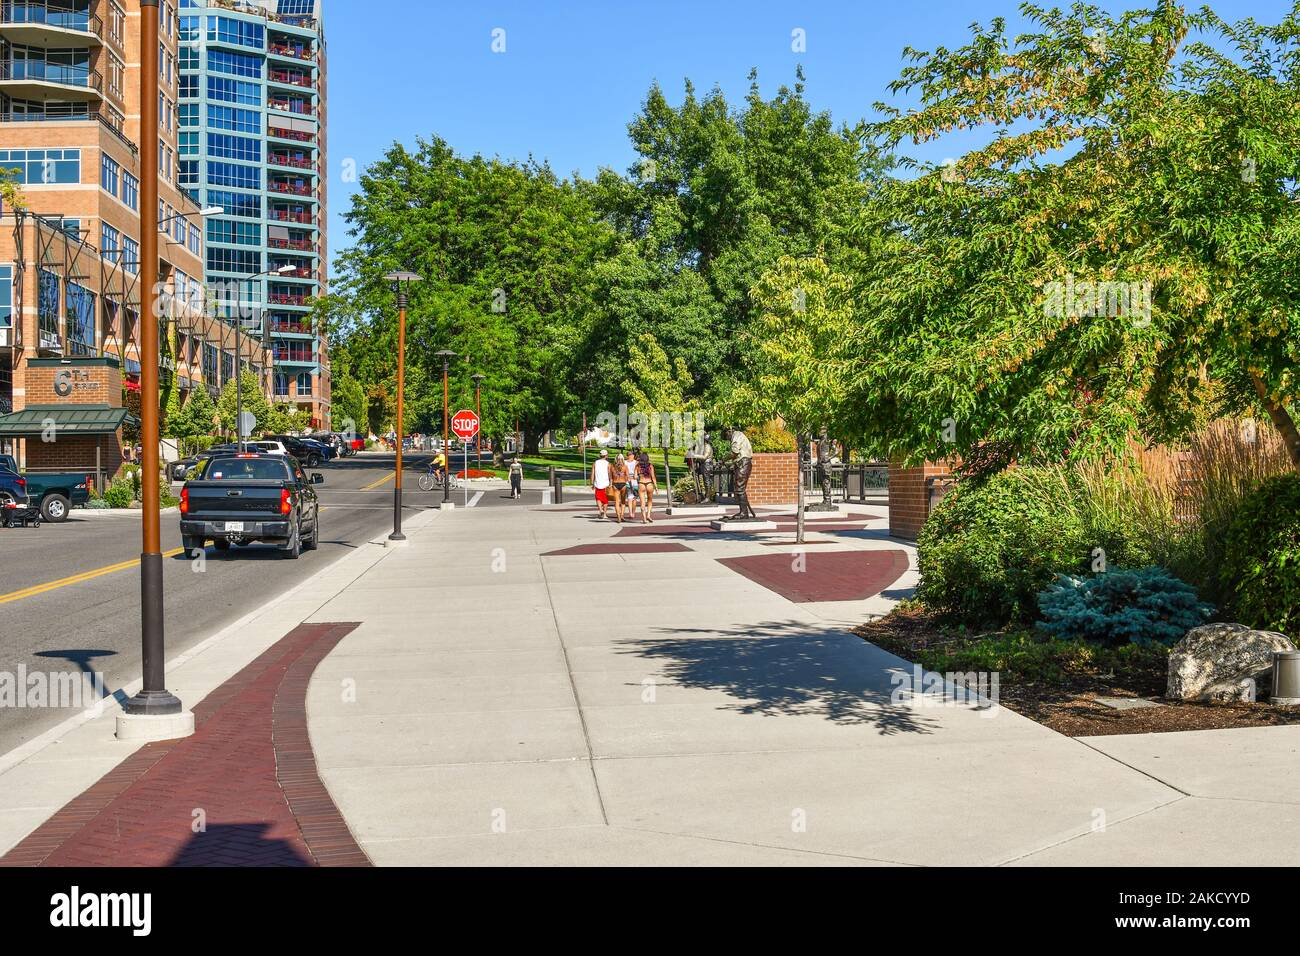 Pedestrians including a group of teens in bathing suits, walk towards McEuen Park during summer in the resort town of Coeur d'Alene, Idaho Stock Photo